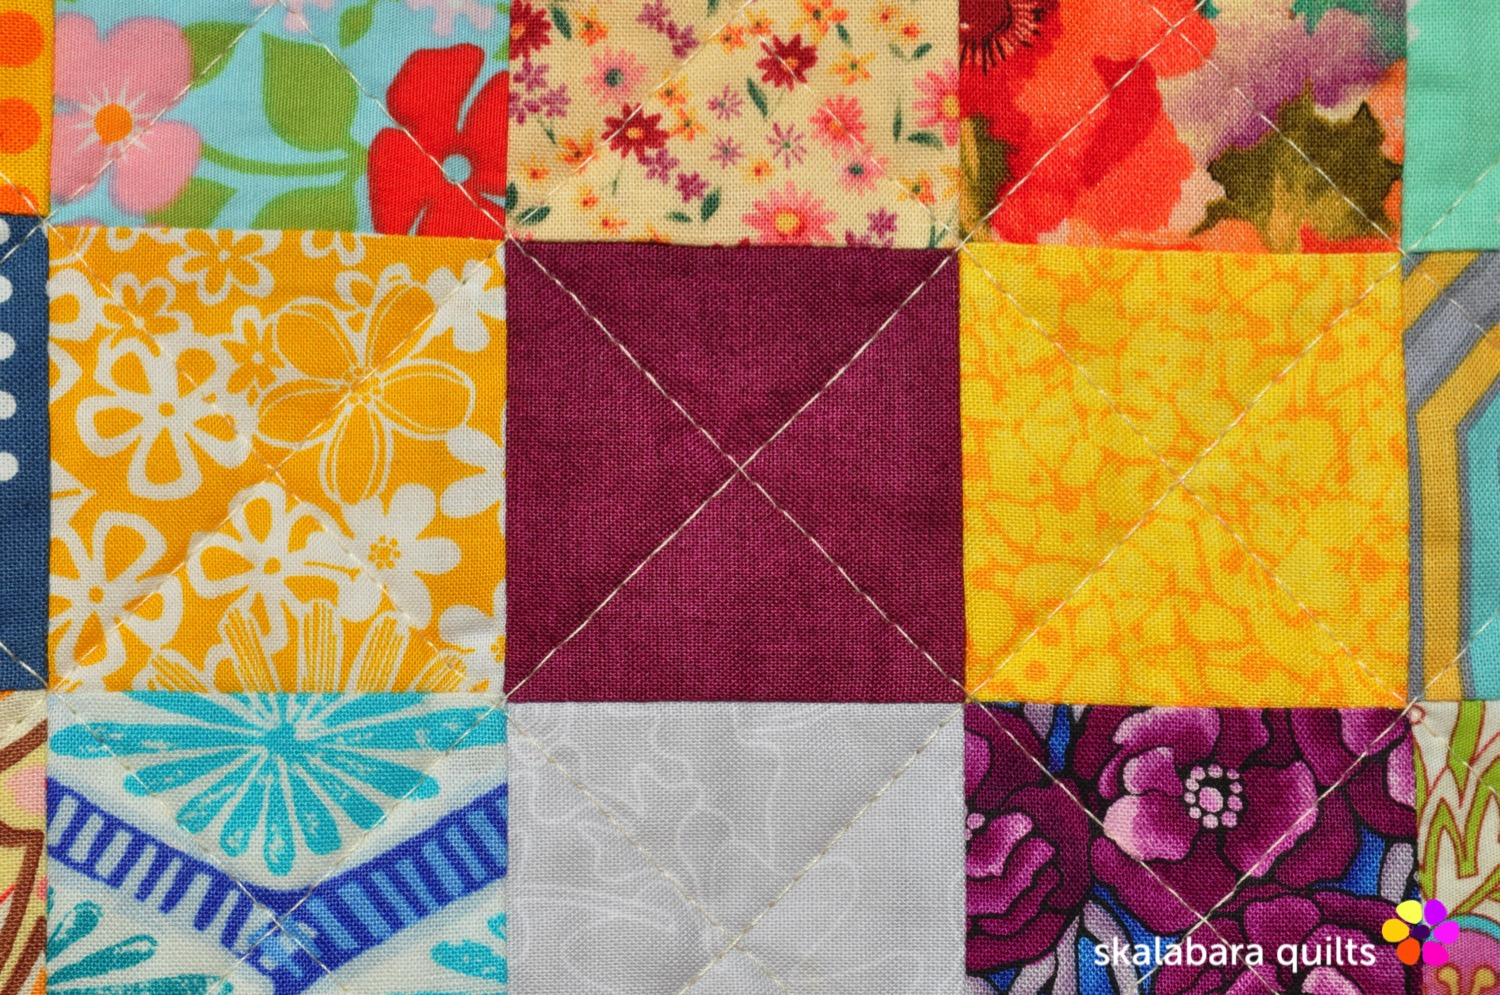 scrappy checkered quilt with crosses stitch length - skalabara quilts